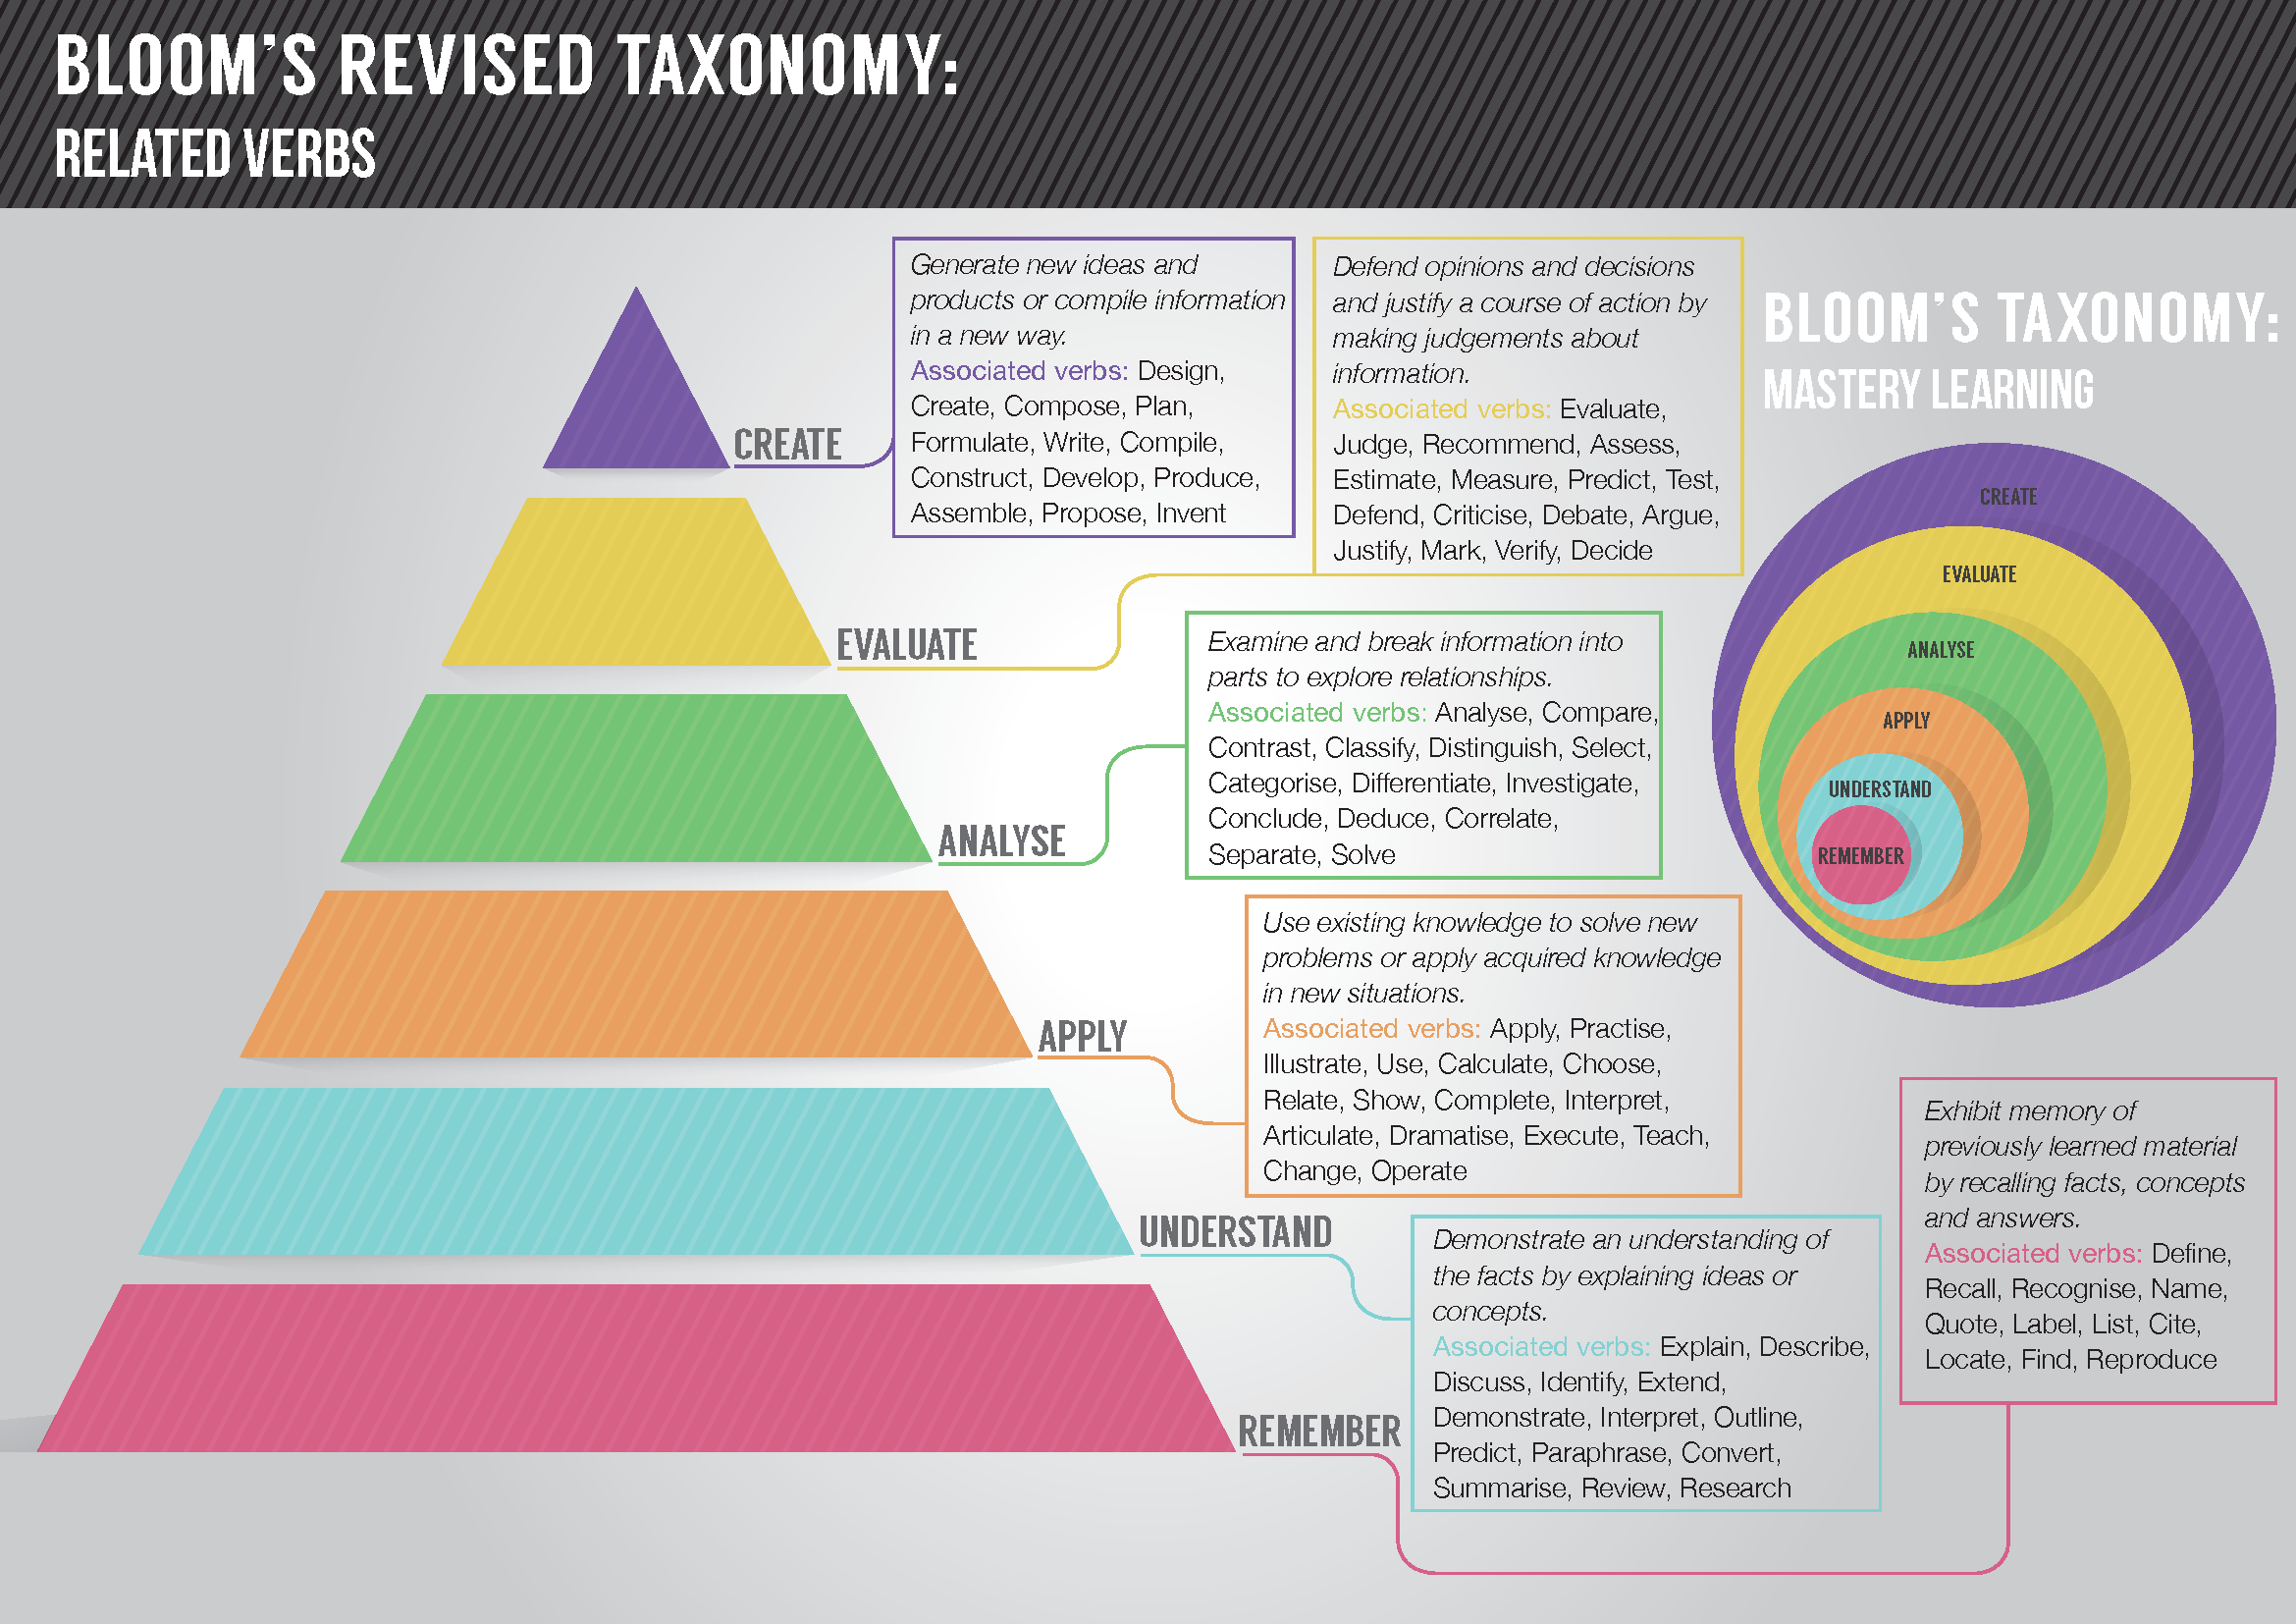 blooms taxonomy 2 essay We will write a custom essay sample on bloom's taxonomy specifically for you for only $1638 $139/page this exercise covers a wide range of the concepts in the cognitive domain of bloom's taxonomy the student demonstrates knowledge by being able to describe an object and defining.